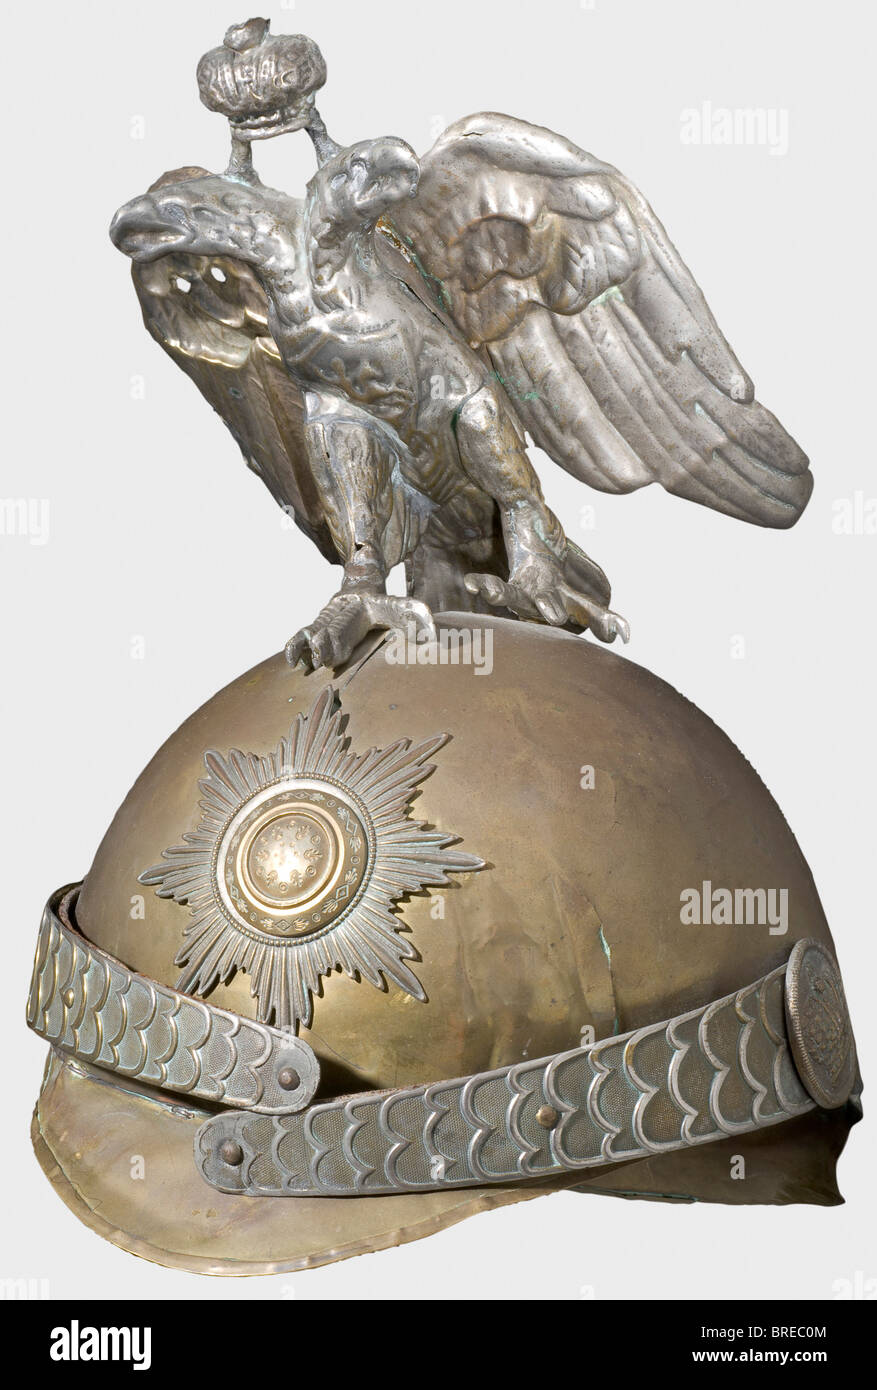 A child's helmet, Horse Guards A toy helmet for children of the pattern used by the Cuirassier Guards. Brass. - Stock Image